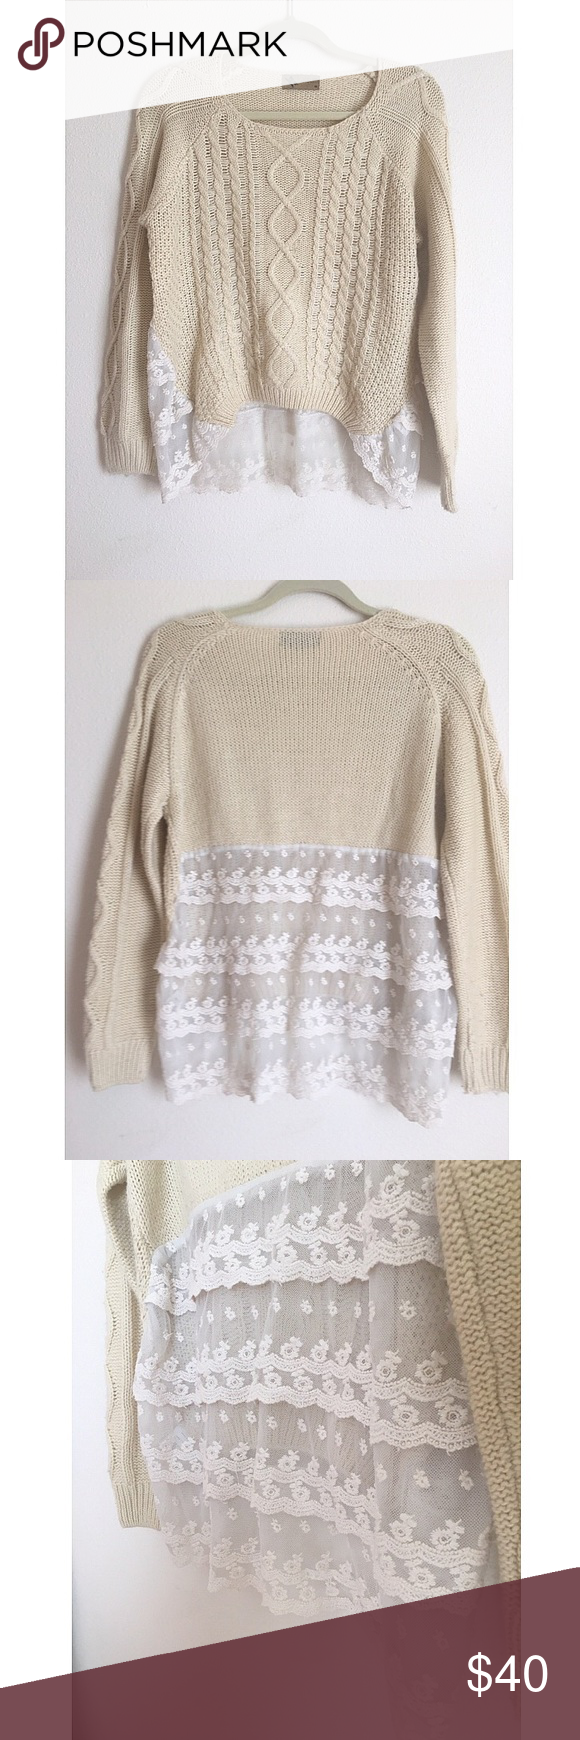 Gorgeous Lace Knit Sweater Cream colored knit sweater with layered ...